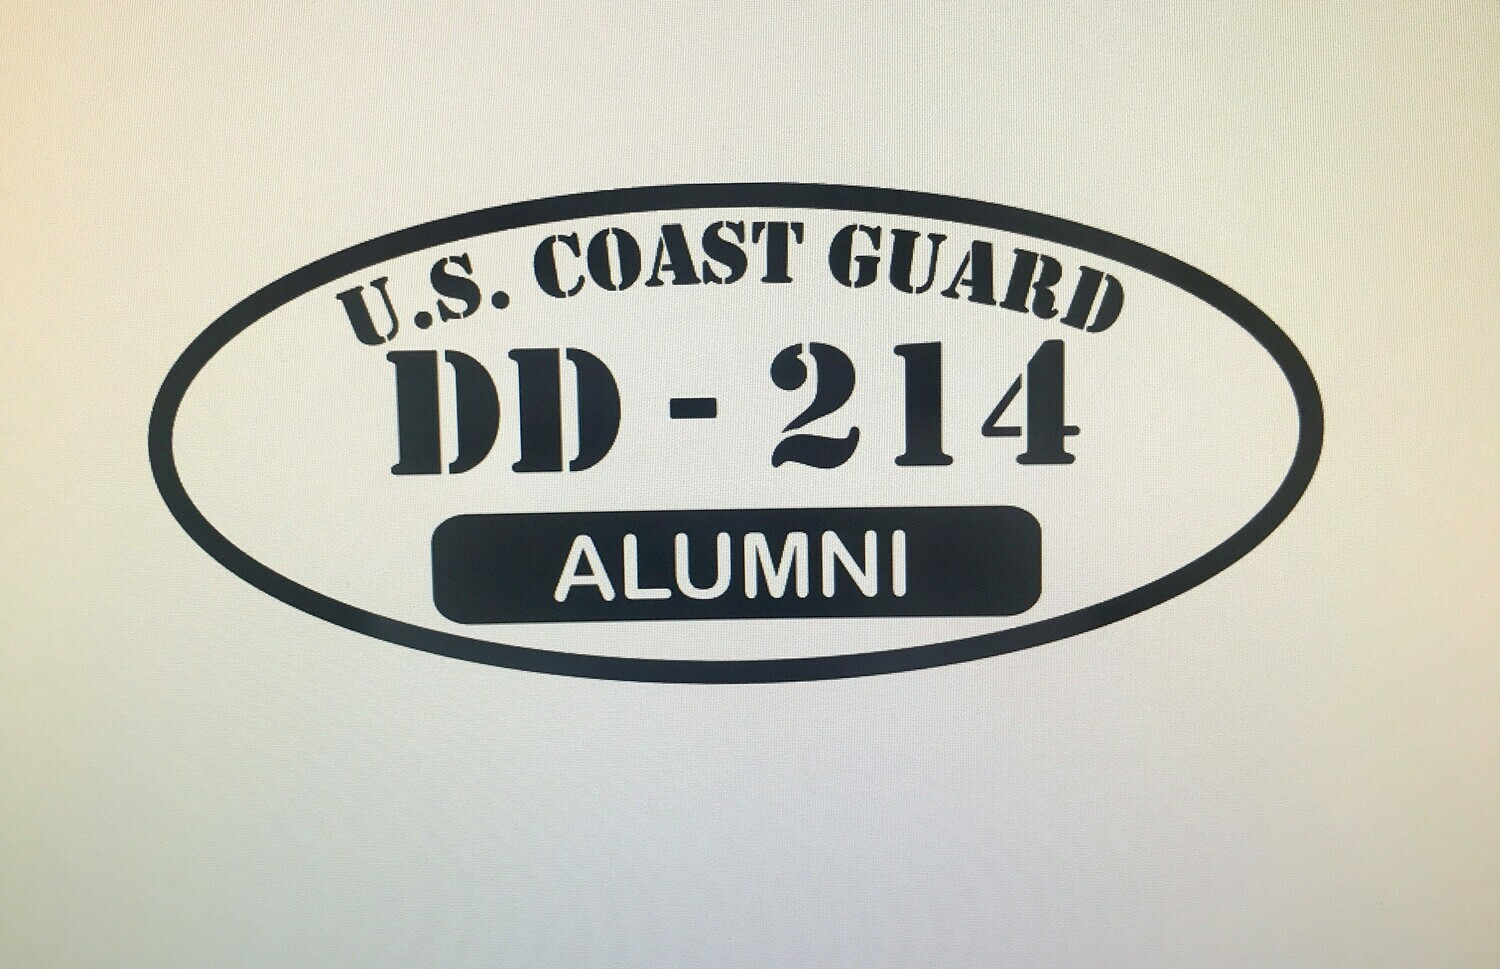 DD-214 Coast Guard Edition